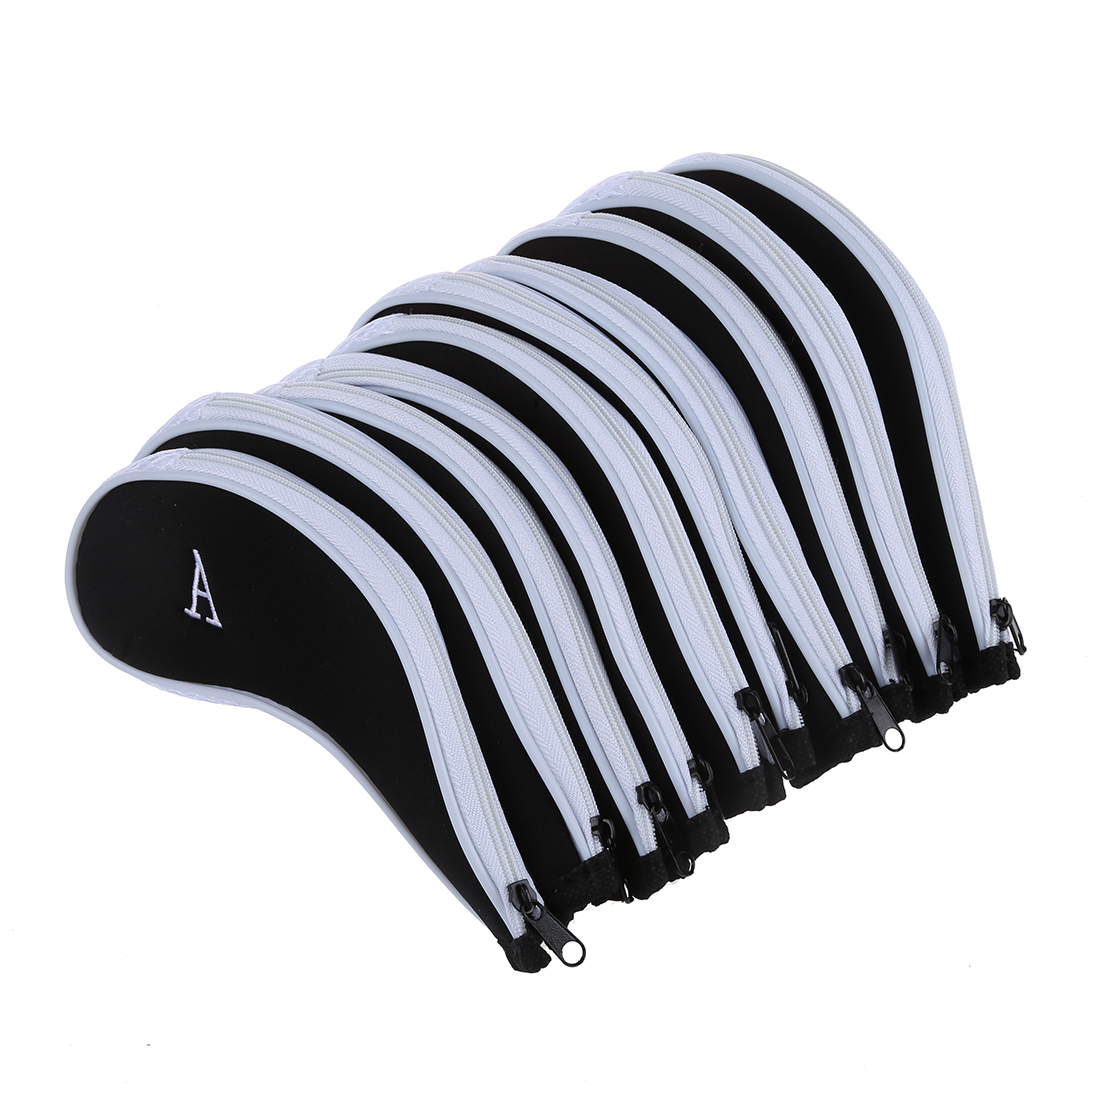 10 pcs Golf Club Iron Putter Head Cover HeadCovers Protect Set Fit for All Brands and Sizes Iron Golf Club Head White